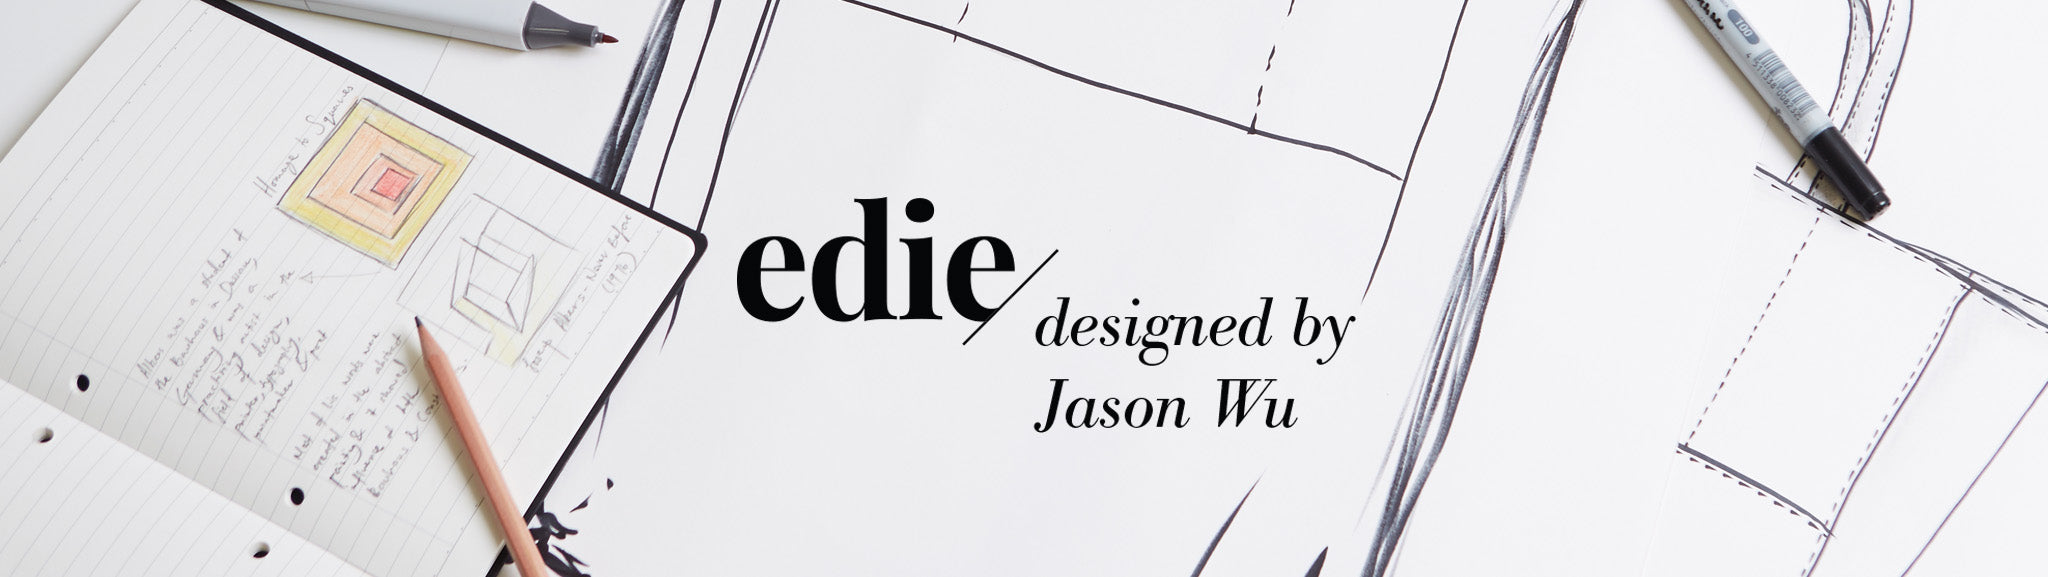 The Edie tote designed by Jason Wu